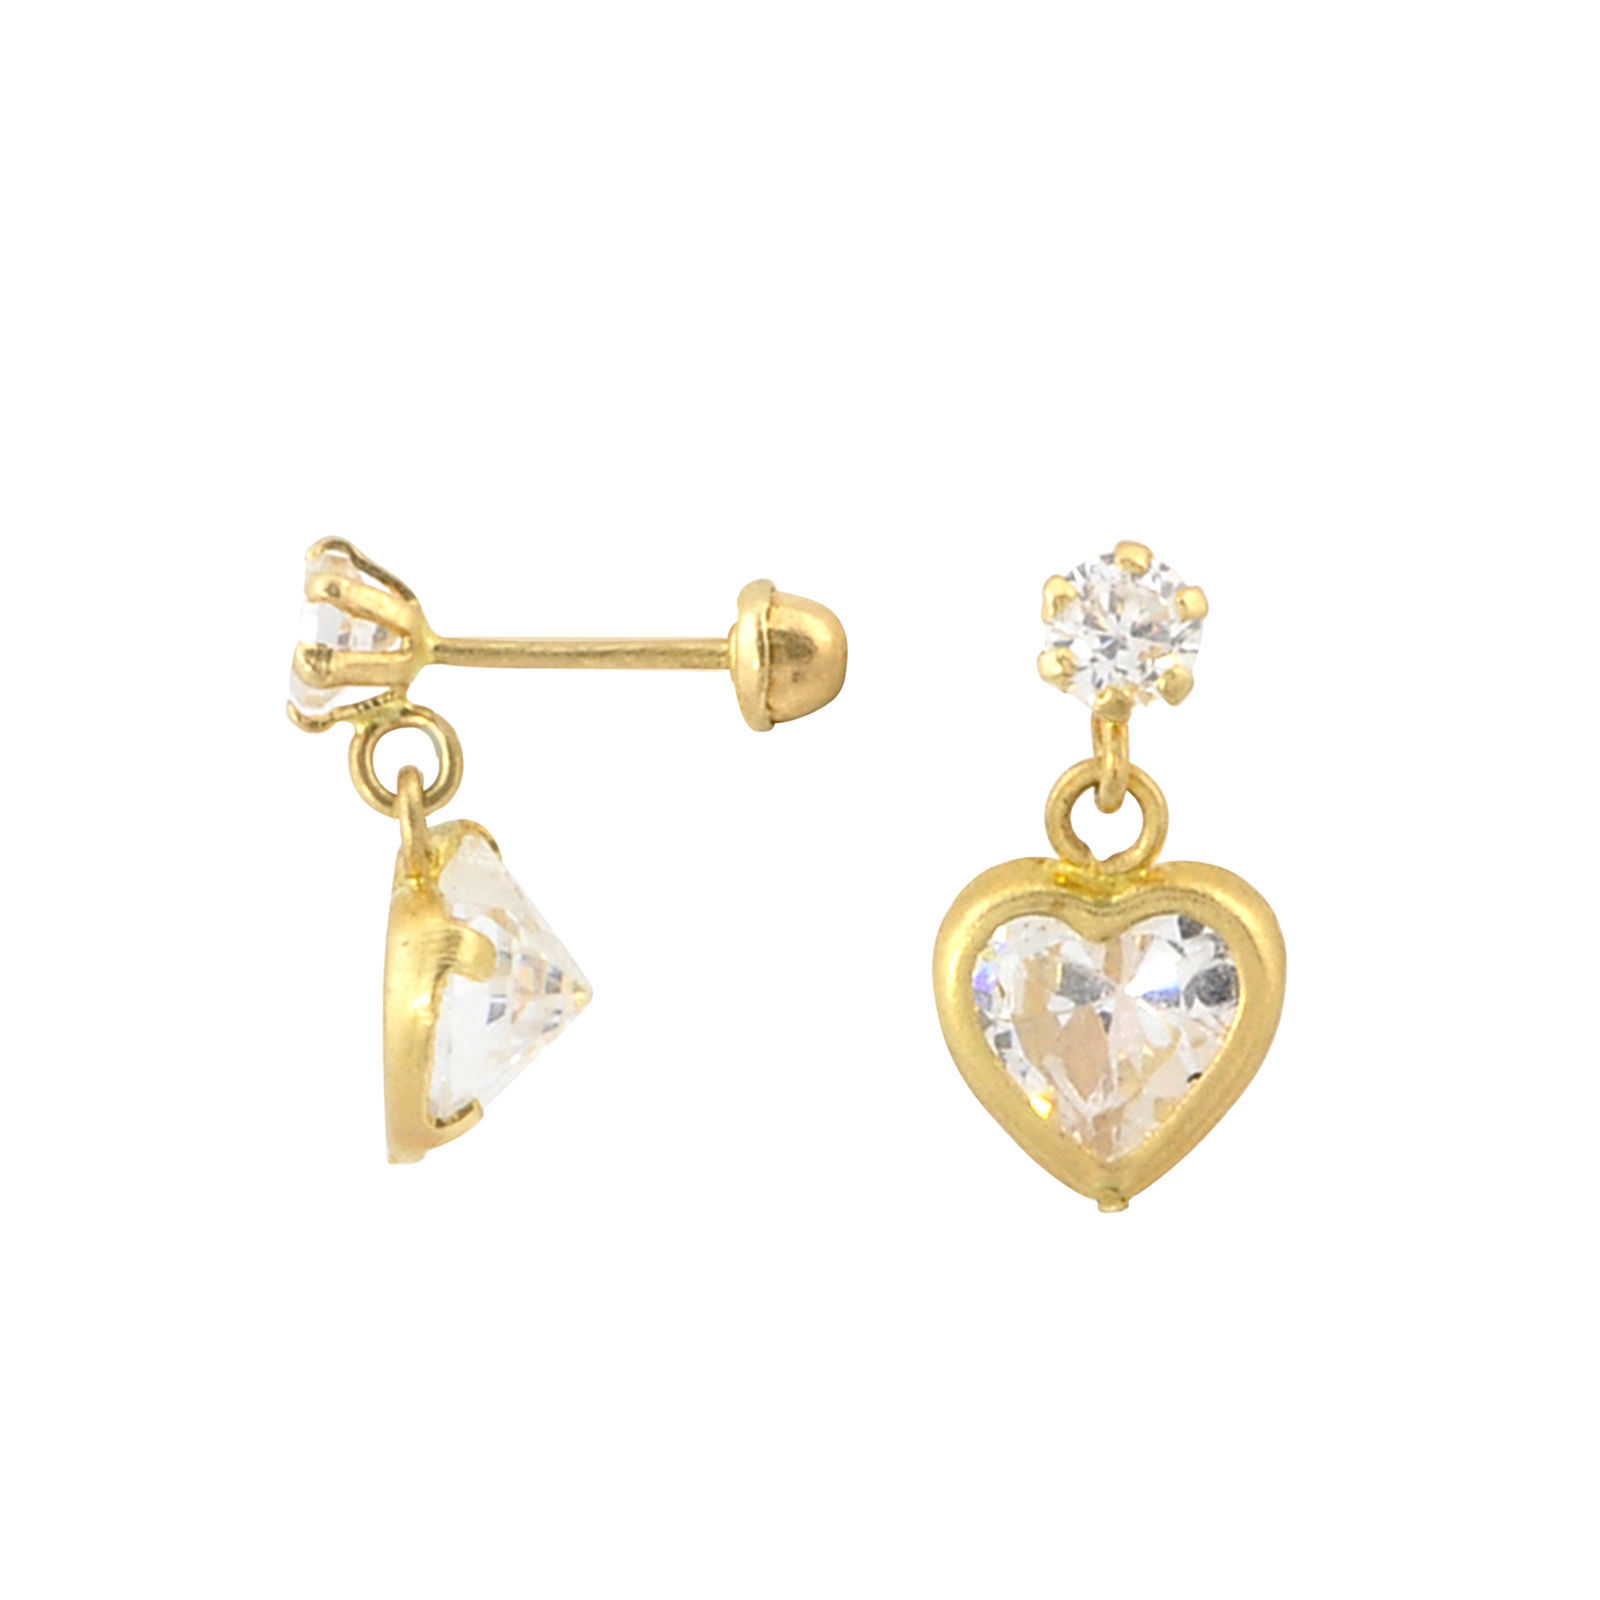 10k Gold CZ Heart Dangle Earrings with Screwbacks 7mm Cubic Zirconia Stones